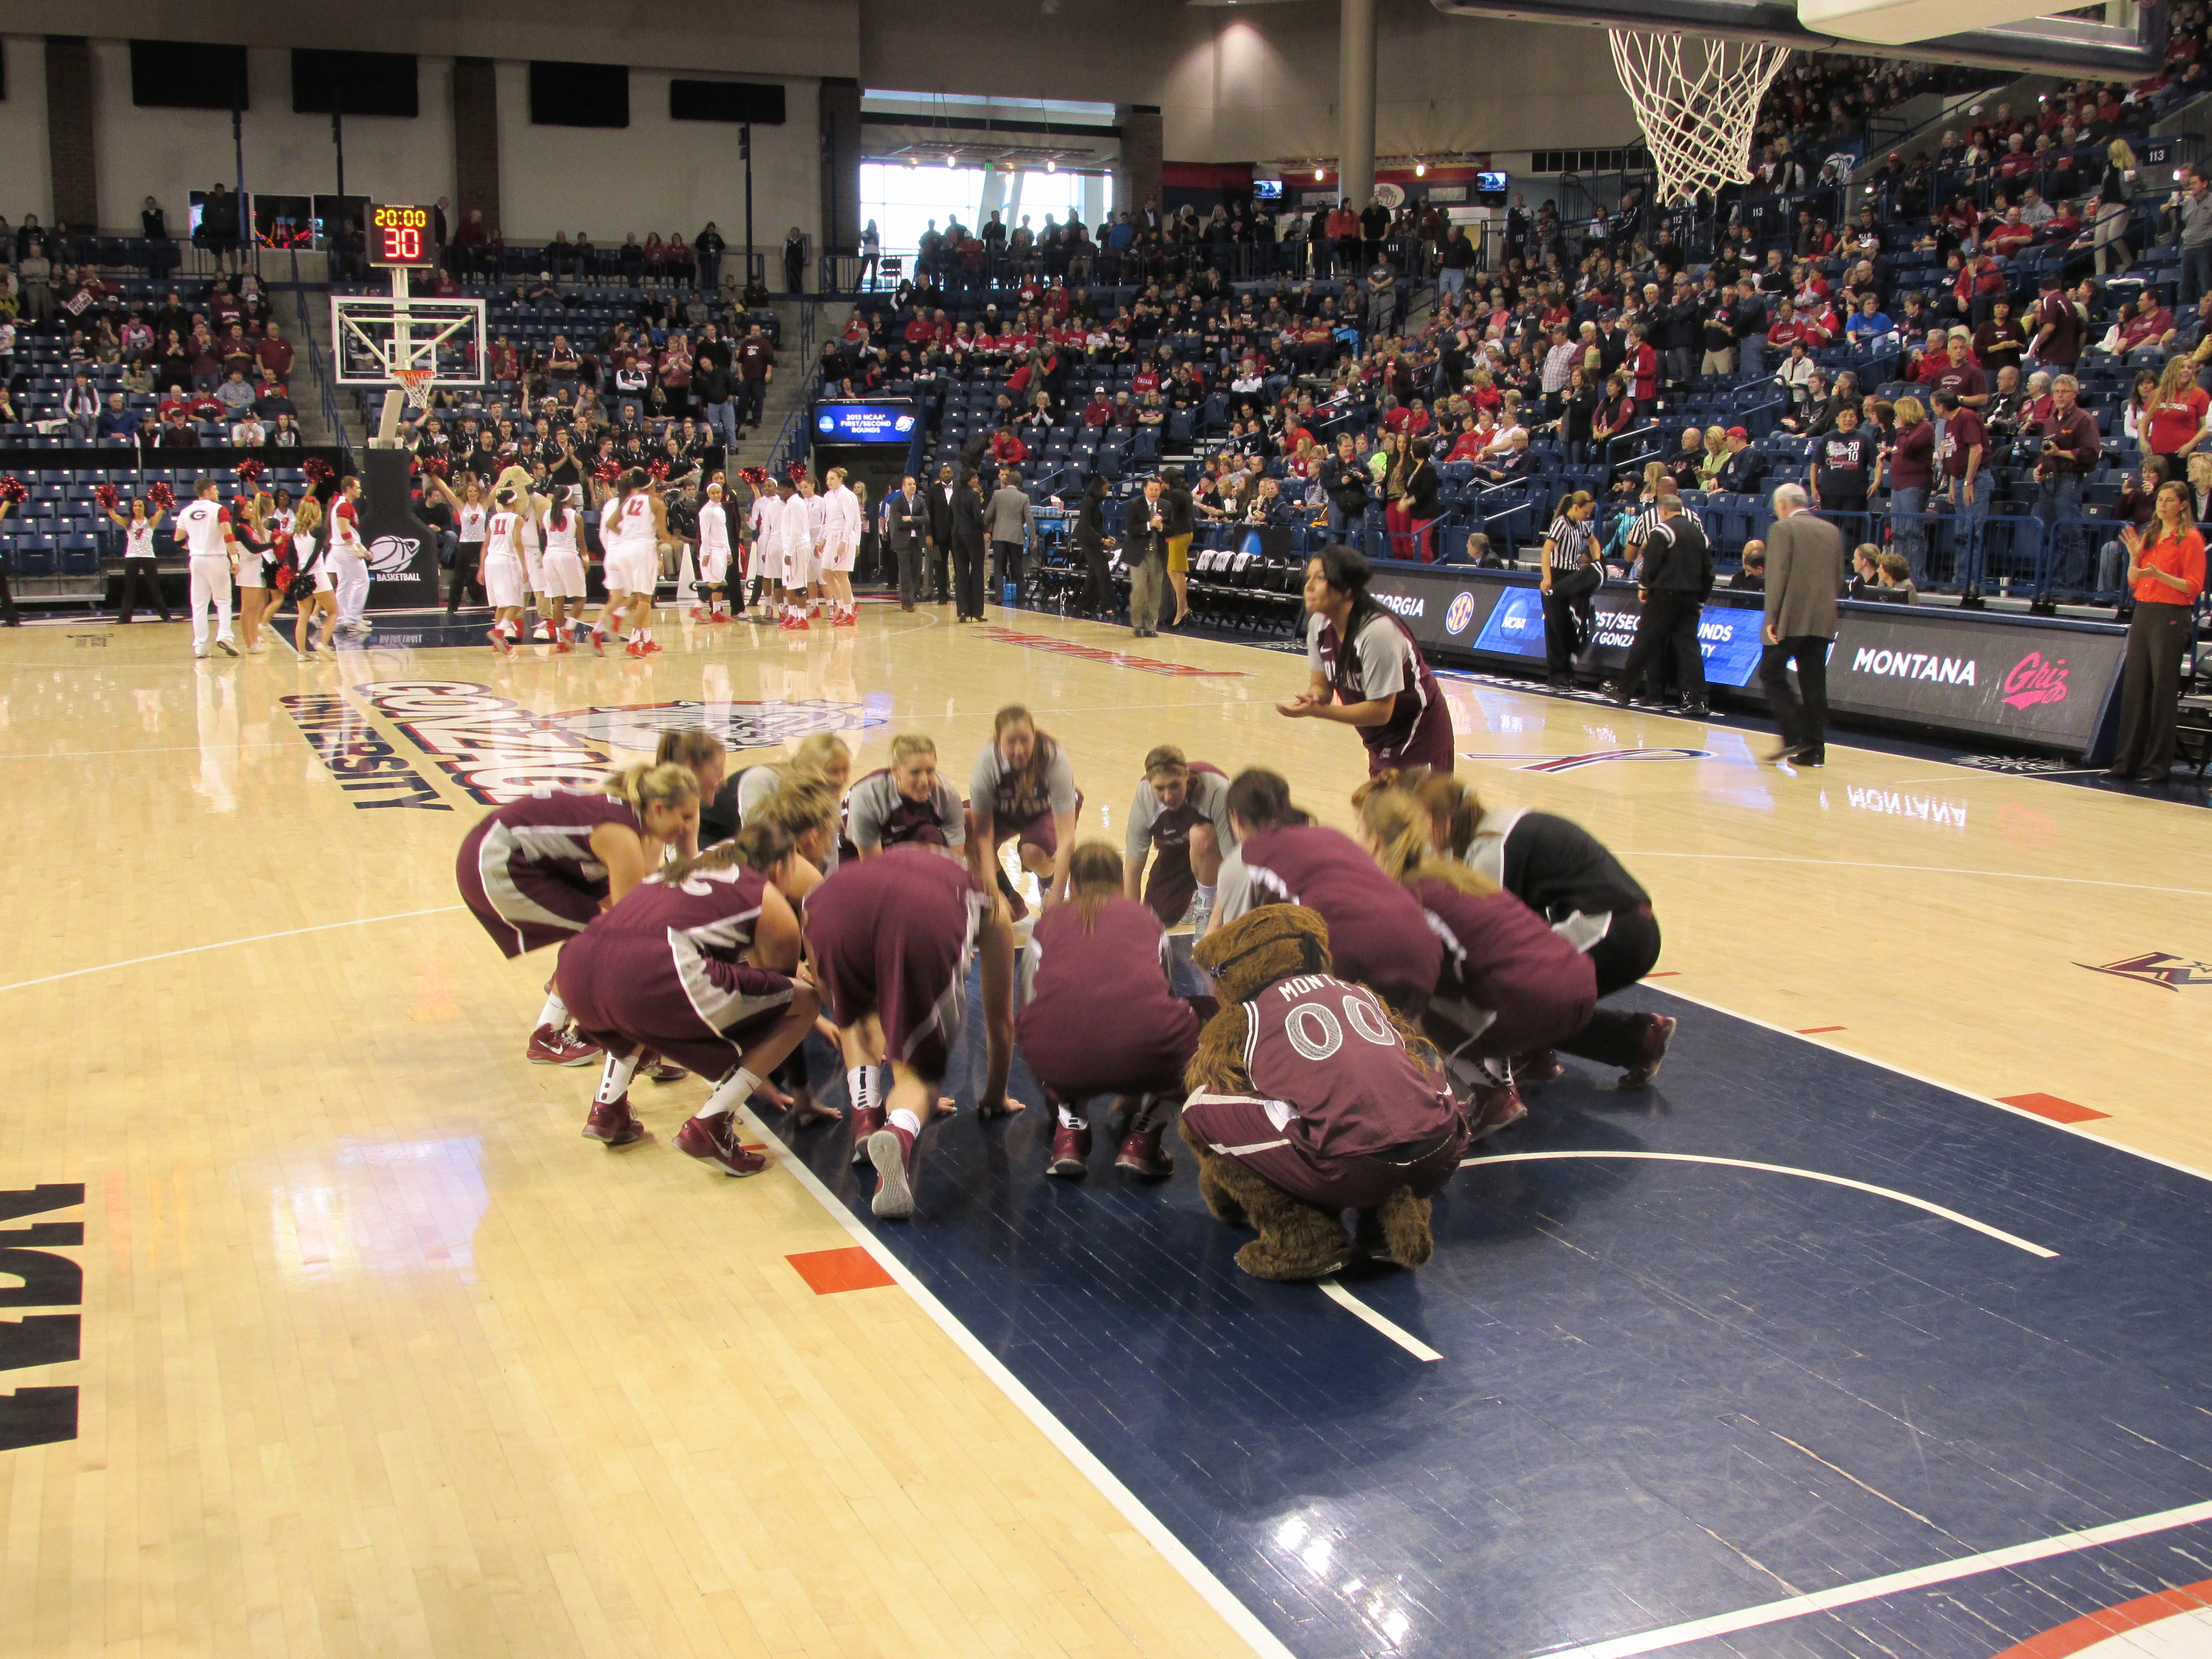 The Lady Griz played well and competed.